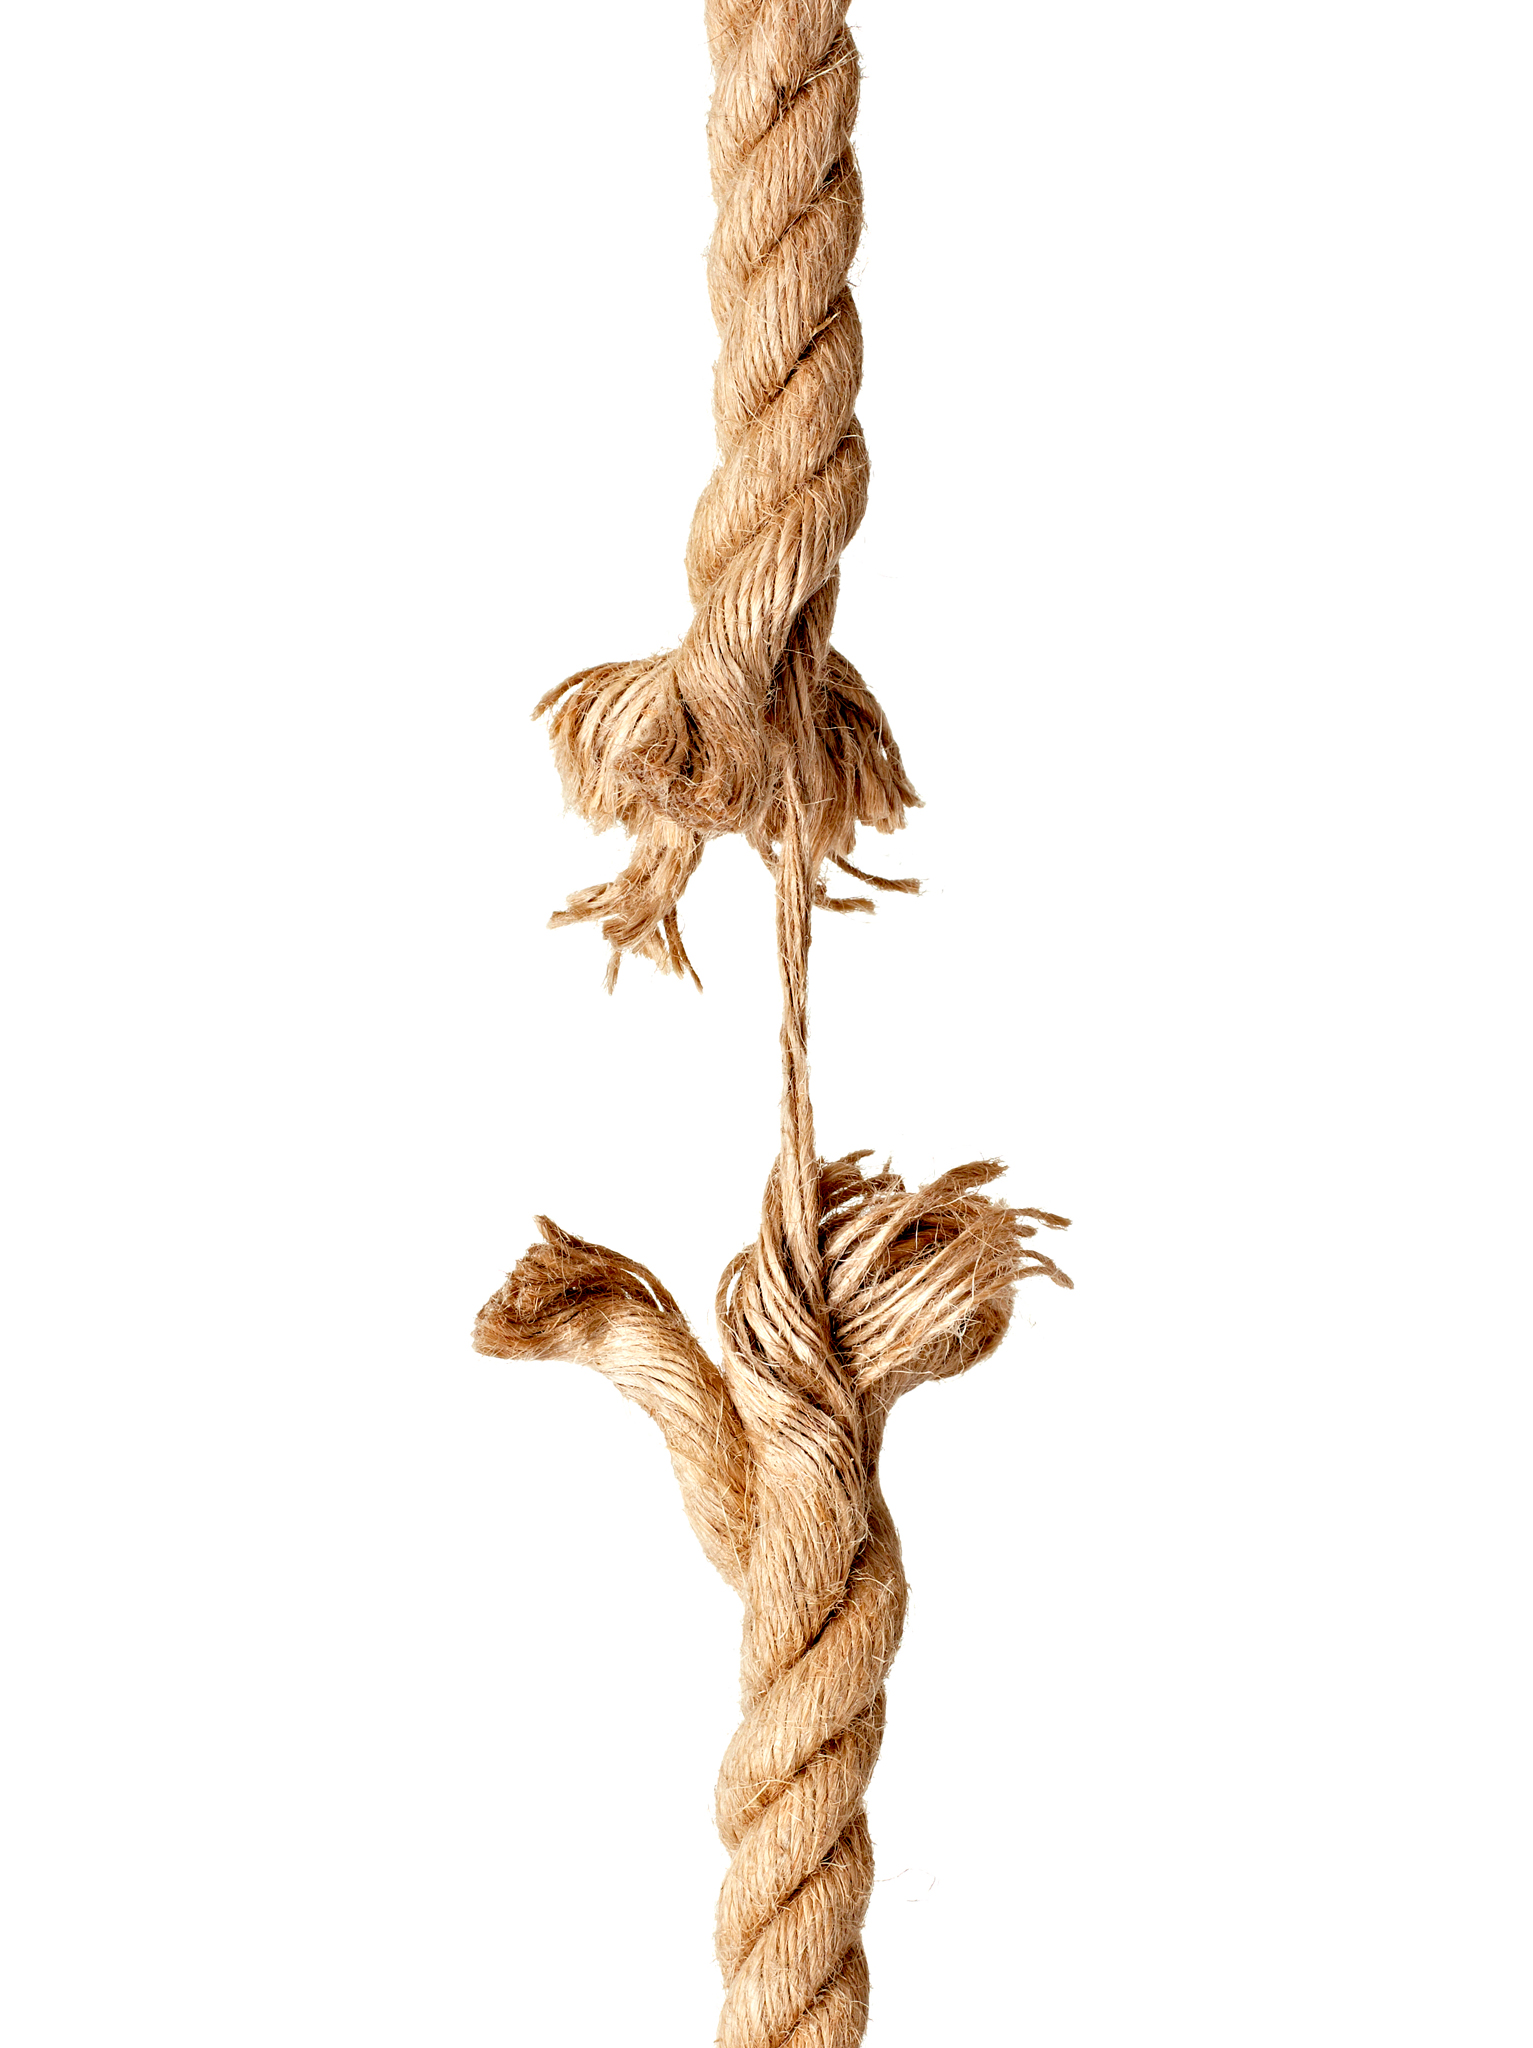 Picture of The Rope Concept